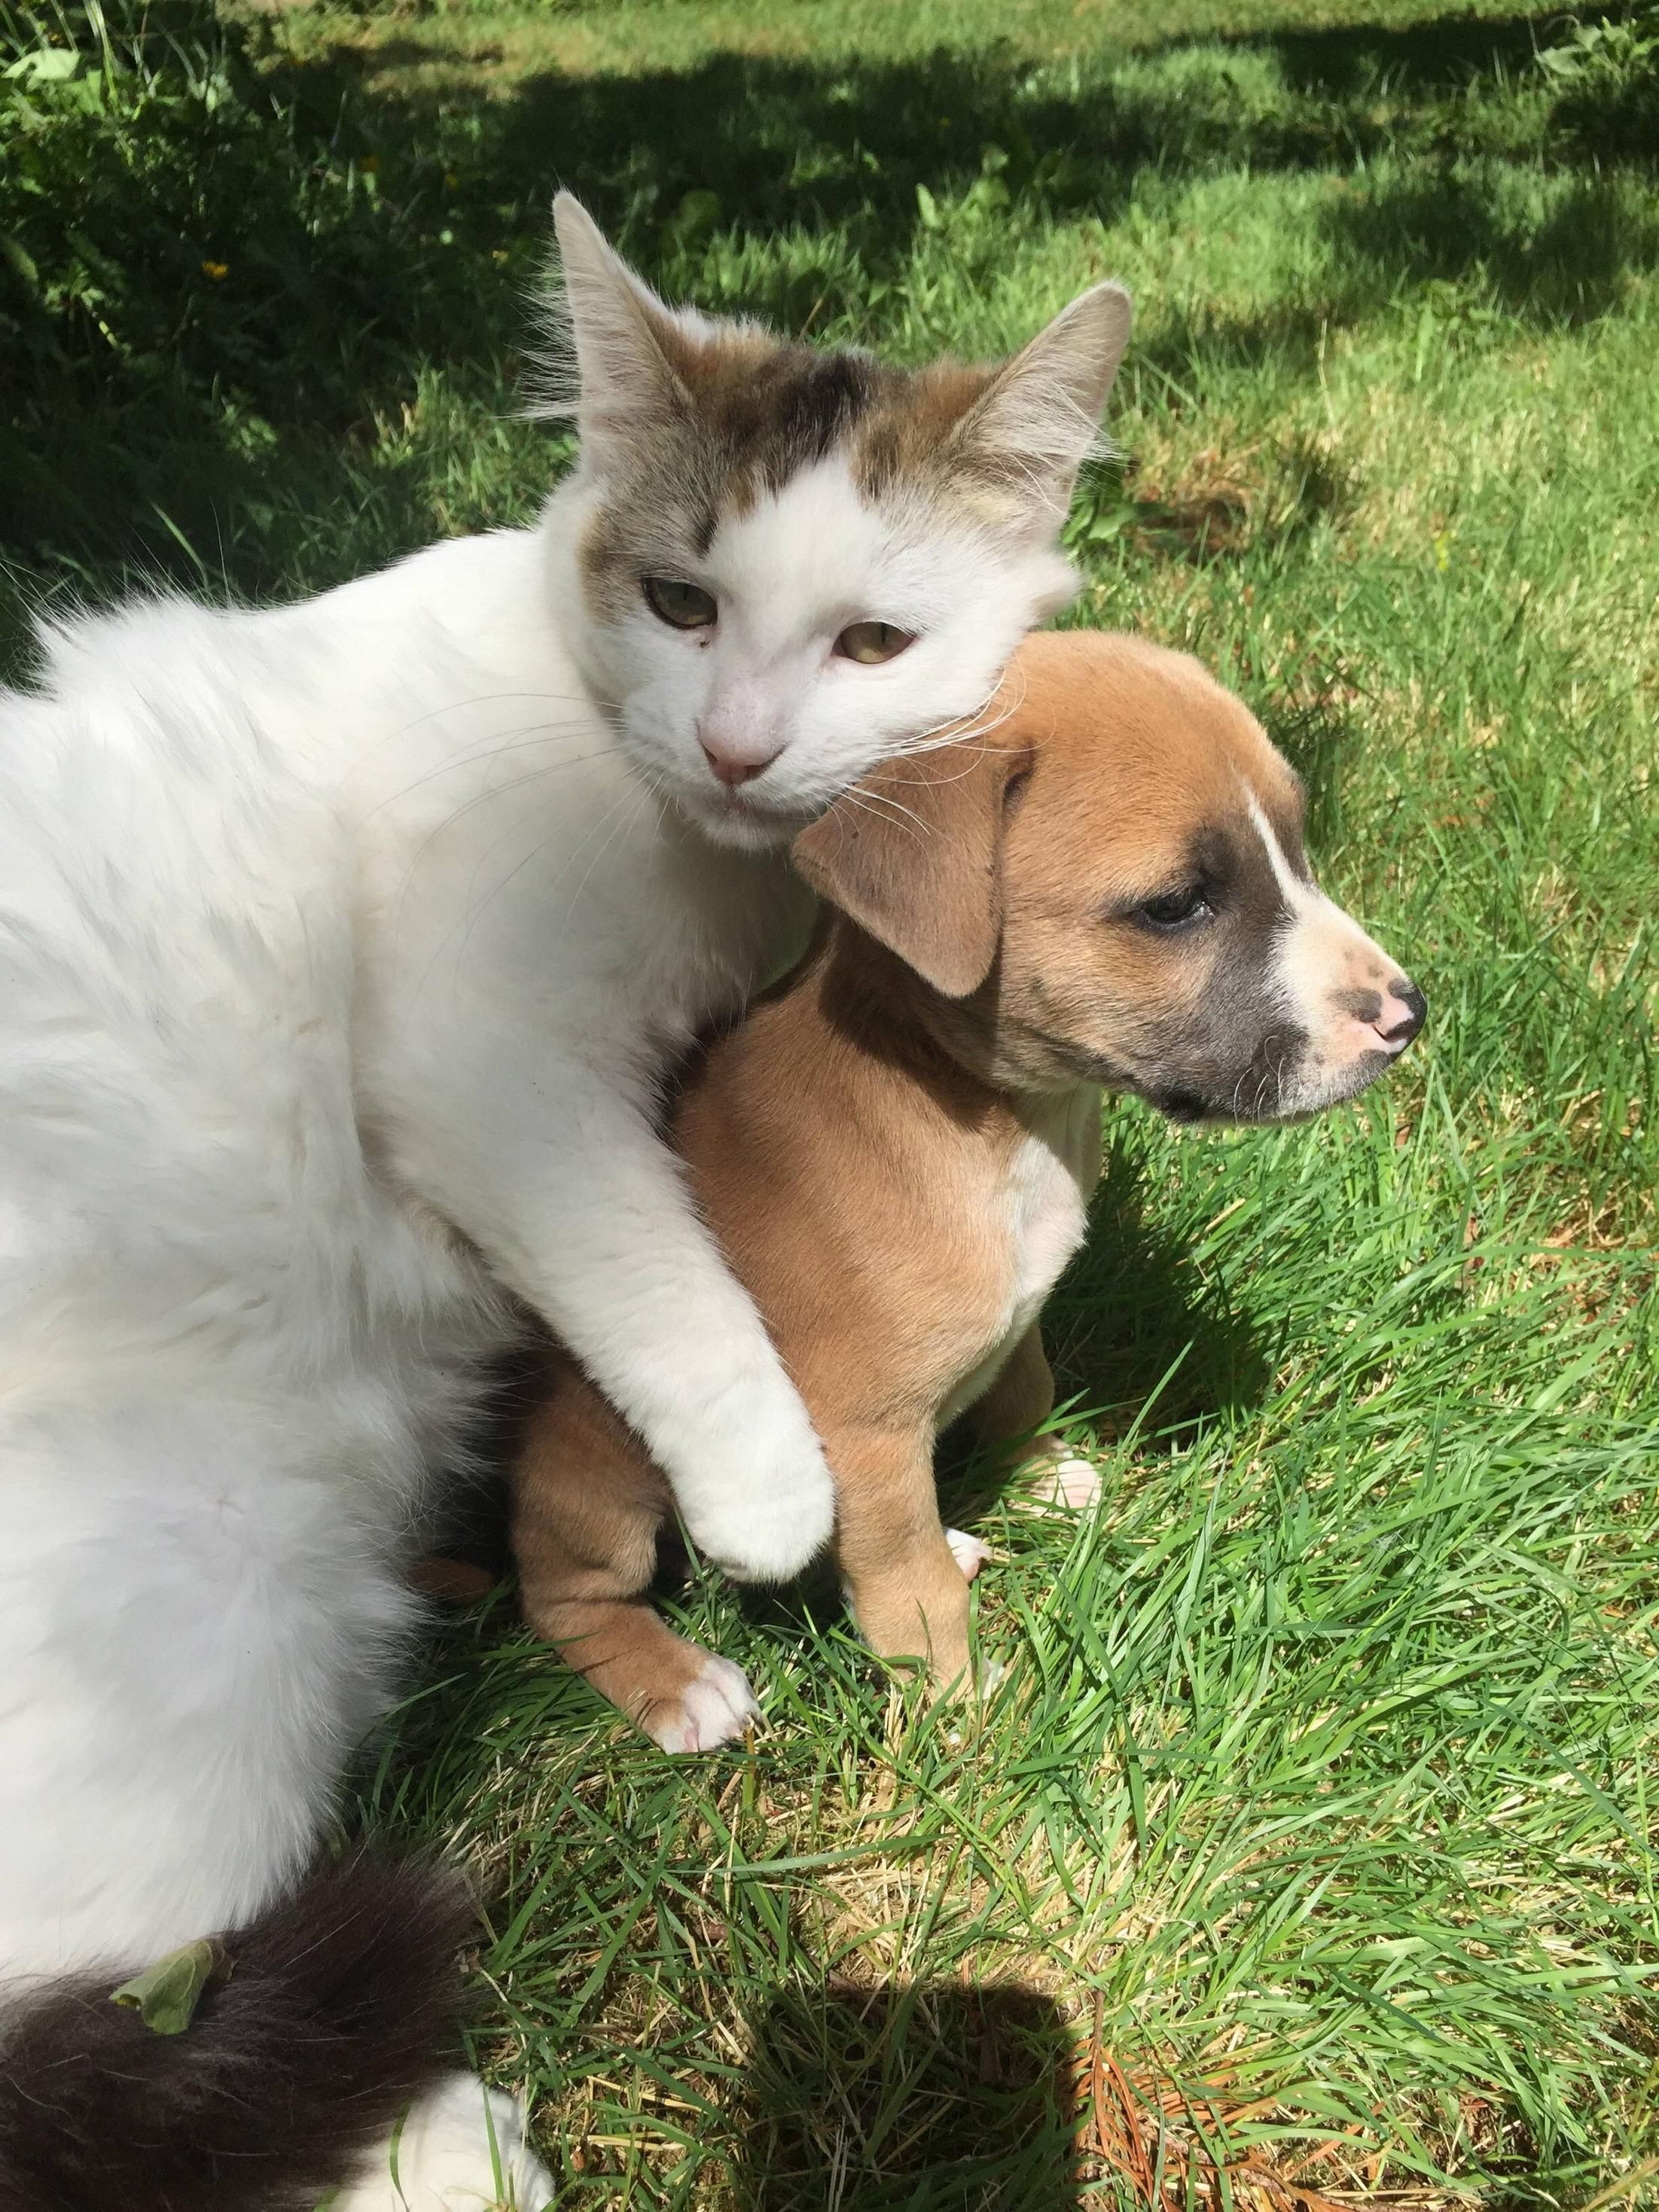 8 Cutest Dogs And Cats Friendship Cute Puppies And Kittens Cute